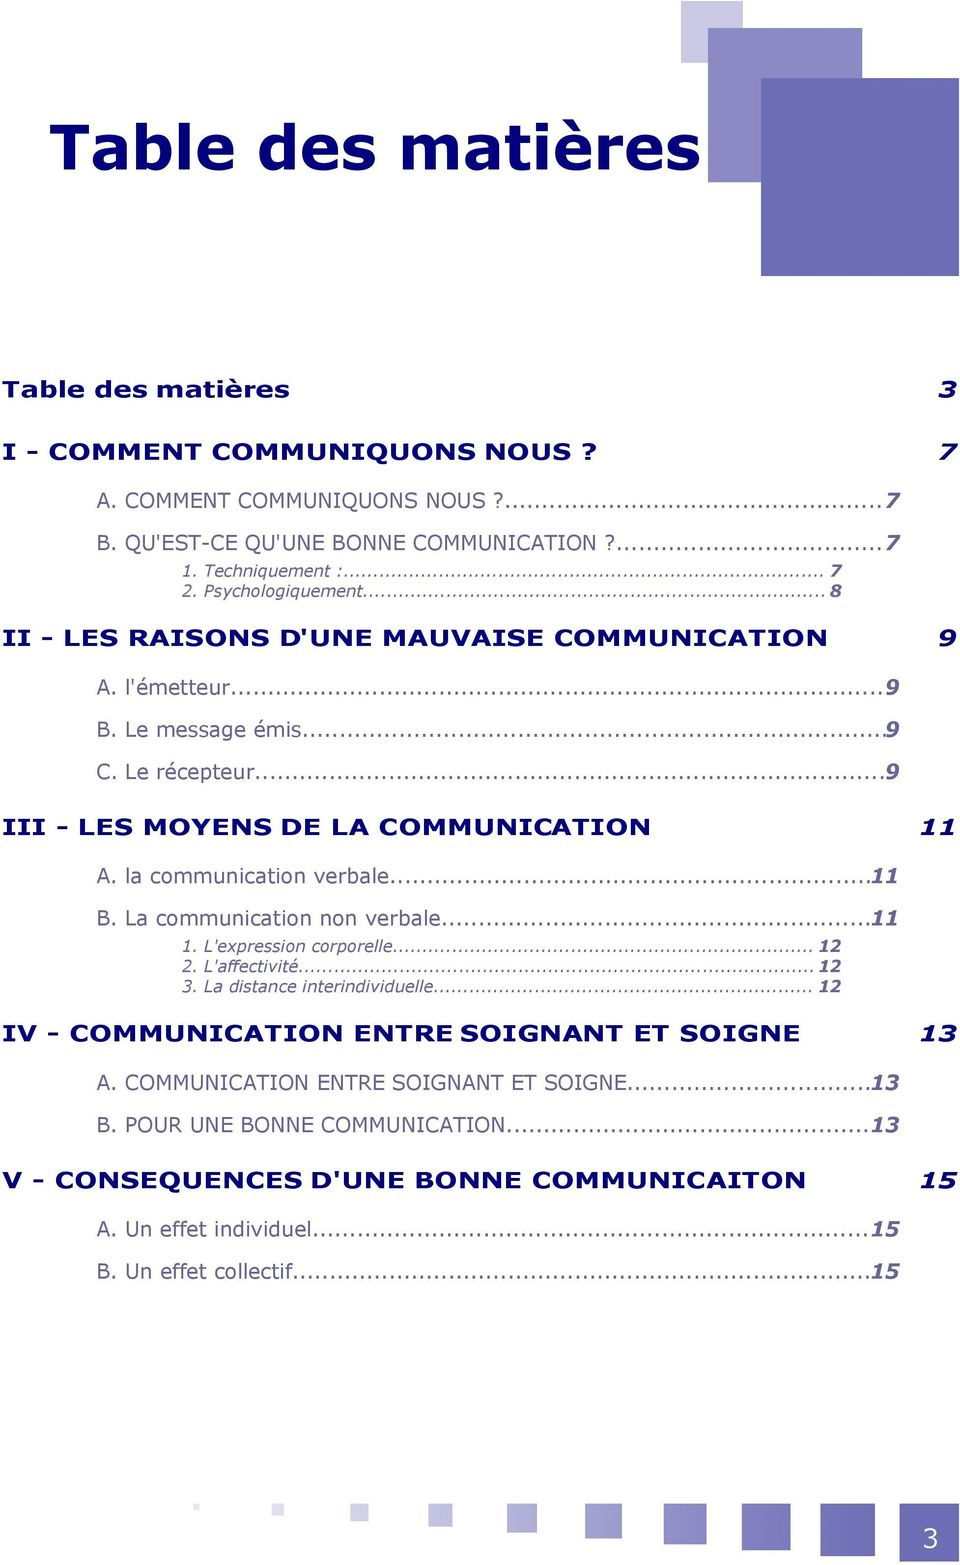 la communication verbale...11 B. La communication non verbale...11 1. L'expression corporelle... 12 2. L'affectivité... 12 3. La distance interindividuelle.